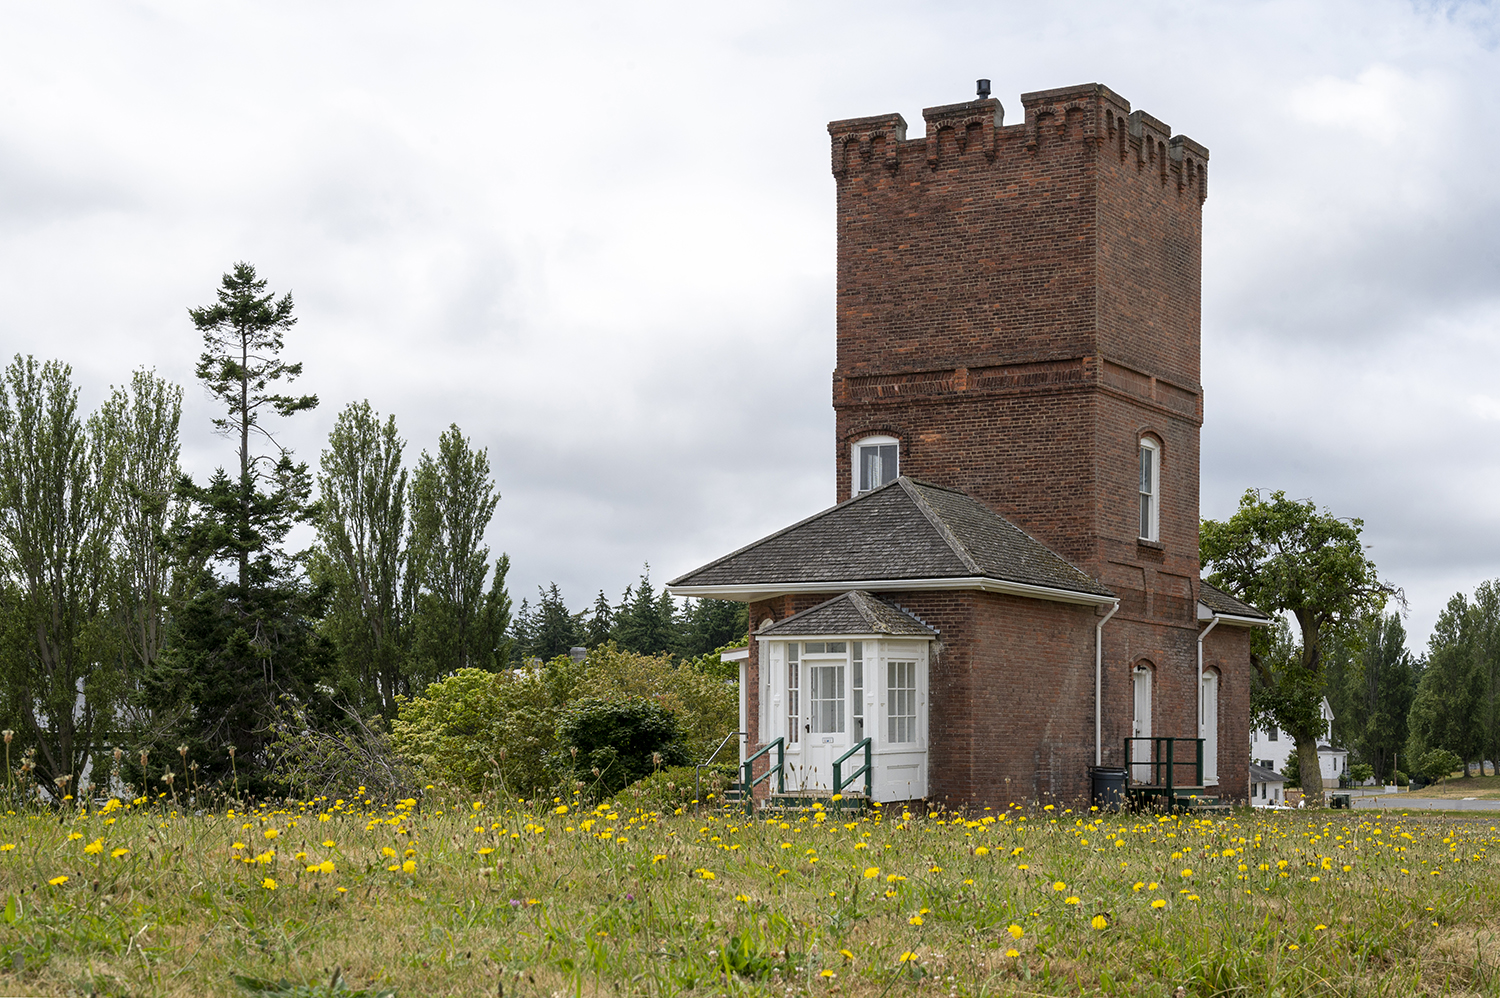 Alexander's Castle sits atop a grassy hill overlooking Admiralty Bay at Fort Worden State Park. The historic landmark, that very much resembles a chess rook, was built by Reverend John Alexander in 1882 for his fiancee — only to find later she had married another while they were apart. (Rachael Jones / Seattle Refined)